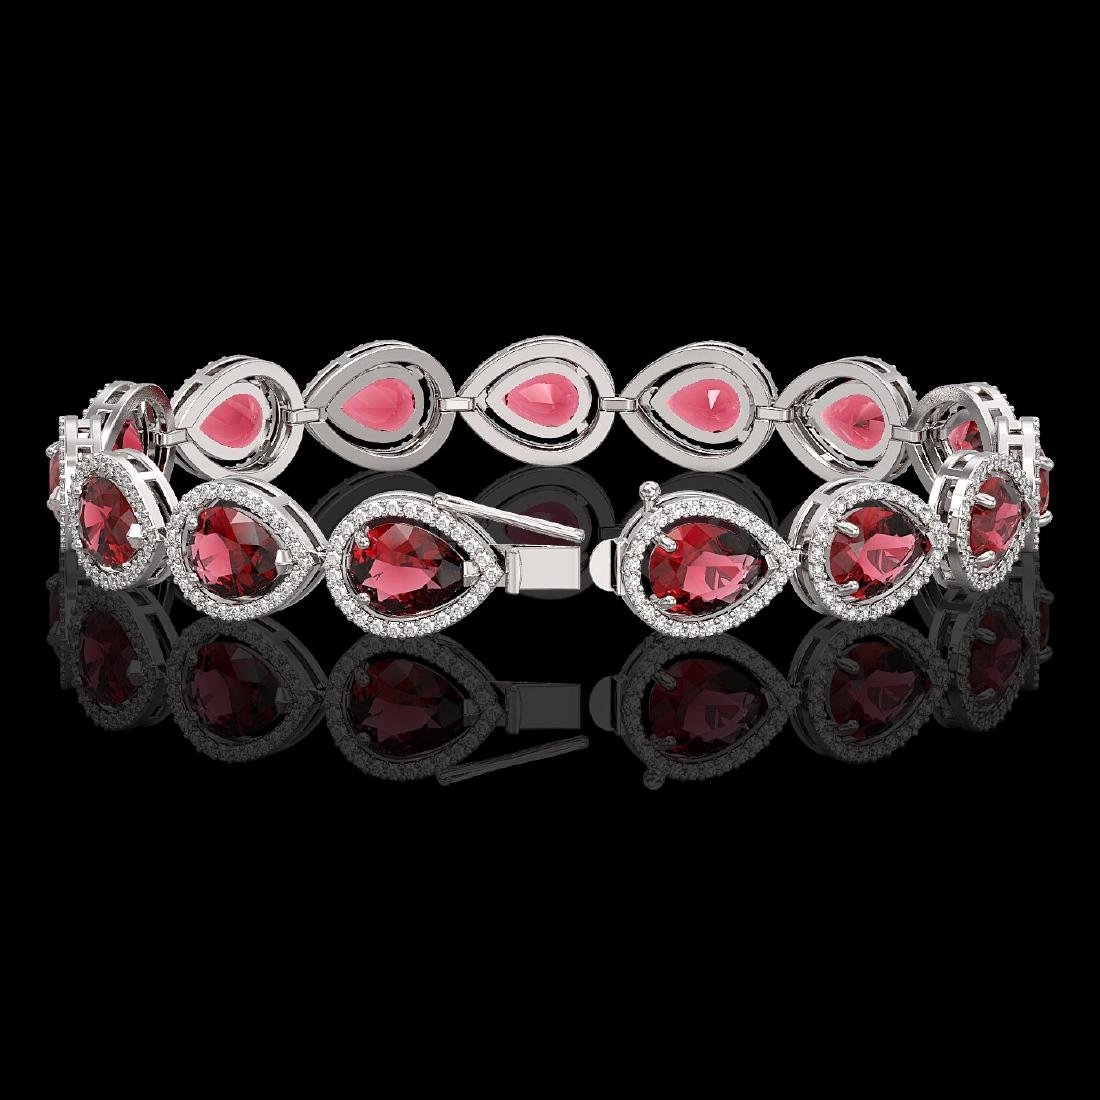 19.7 CTW Tourmaline & Diamond Halo Bracelet 10K White - 2